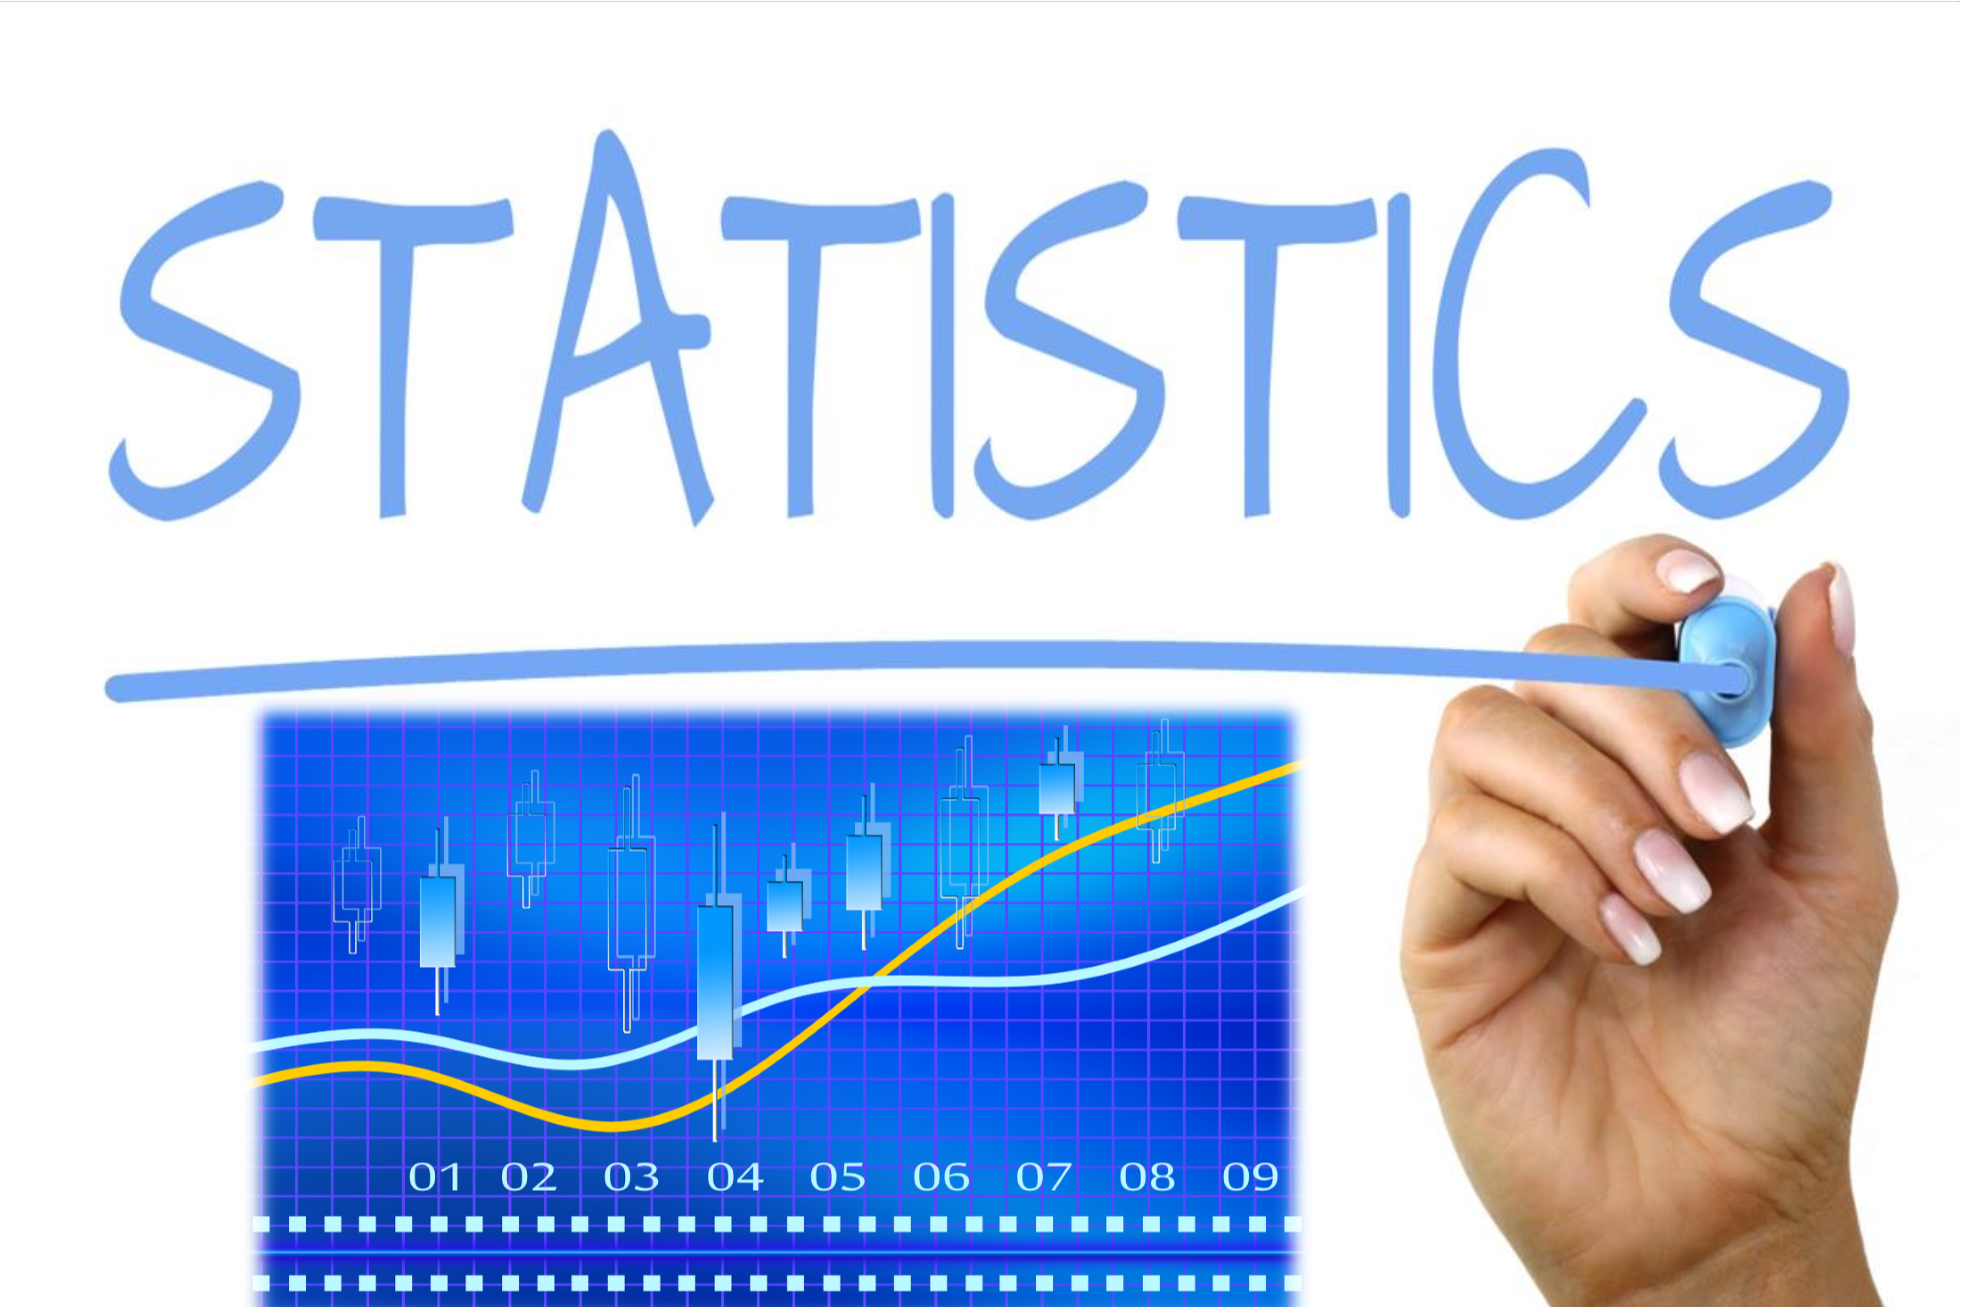 Hand written statistics in blue, with a blue line graph below